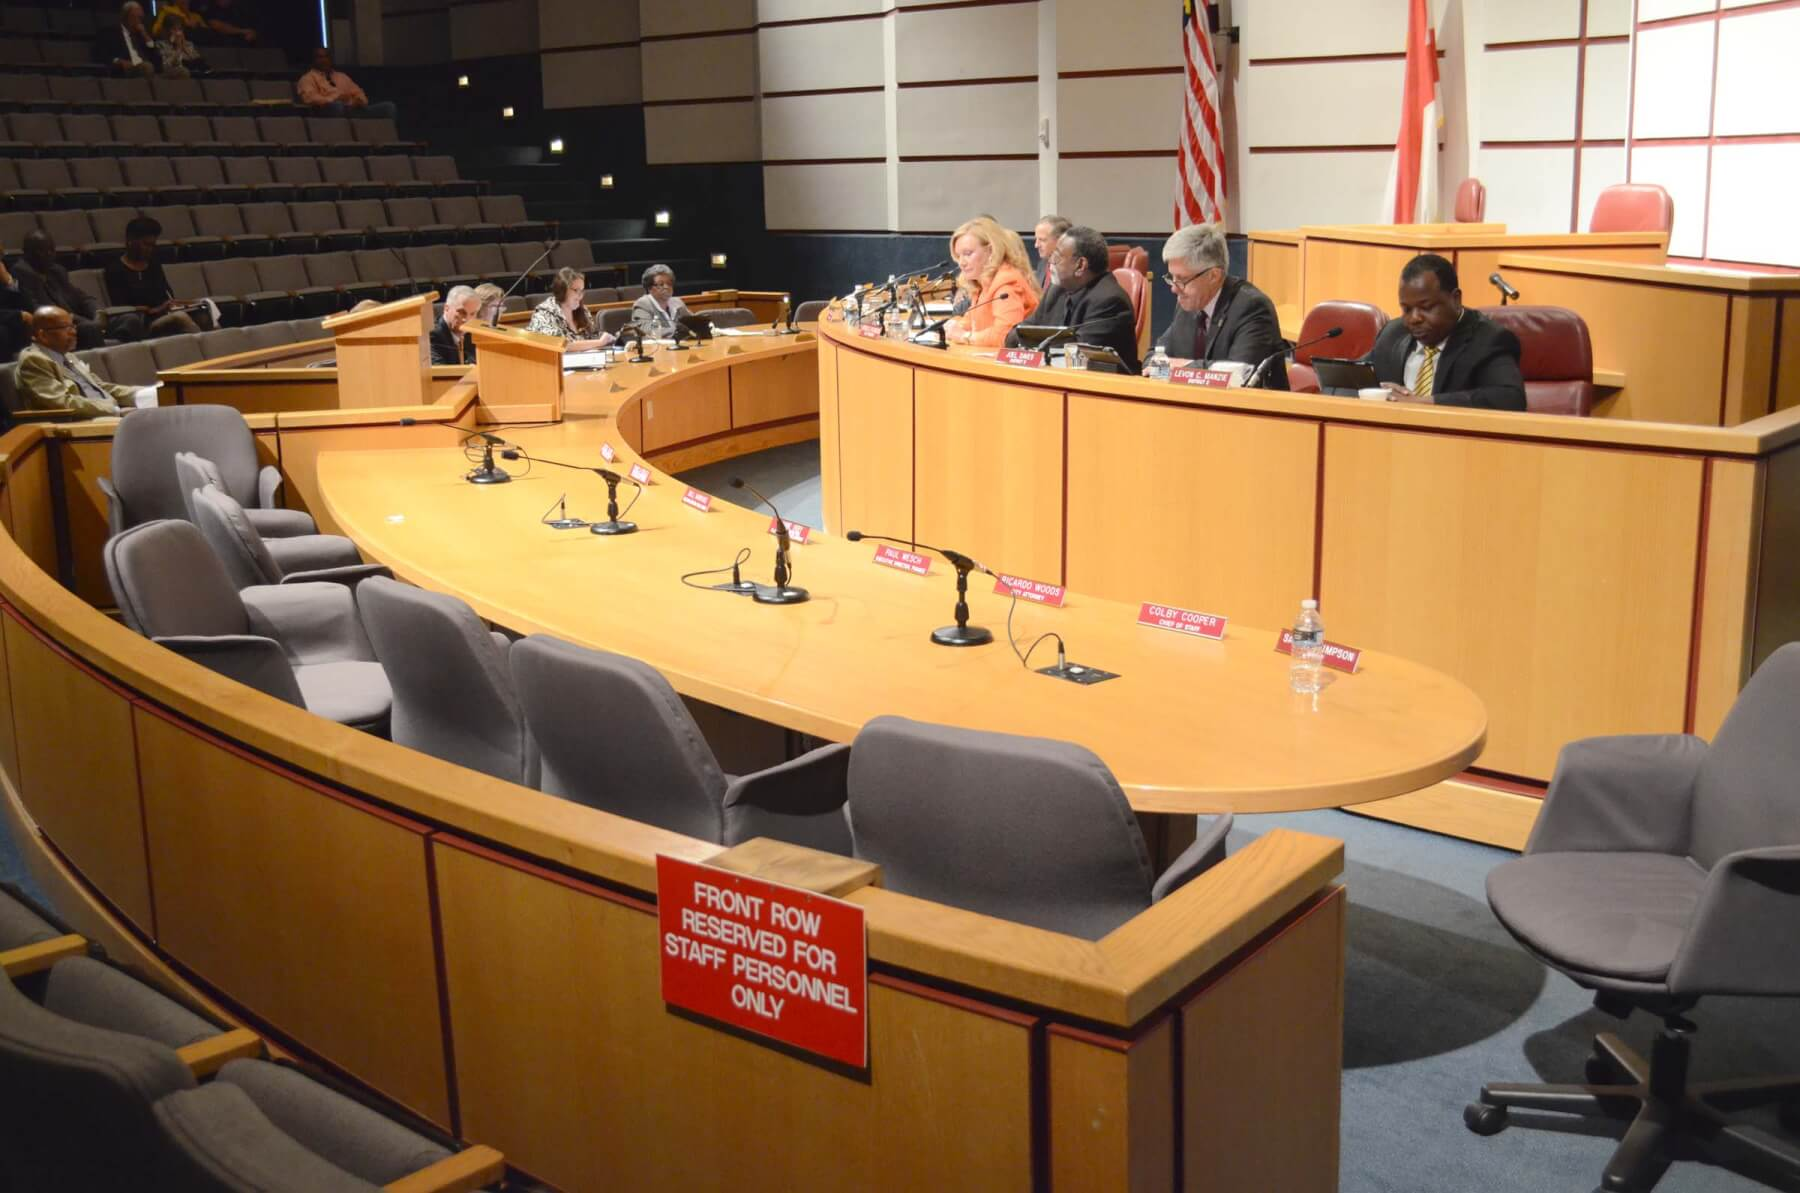 Council to weigh possible 'entertainment district' changes Wednesday